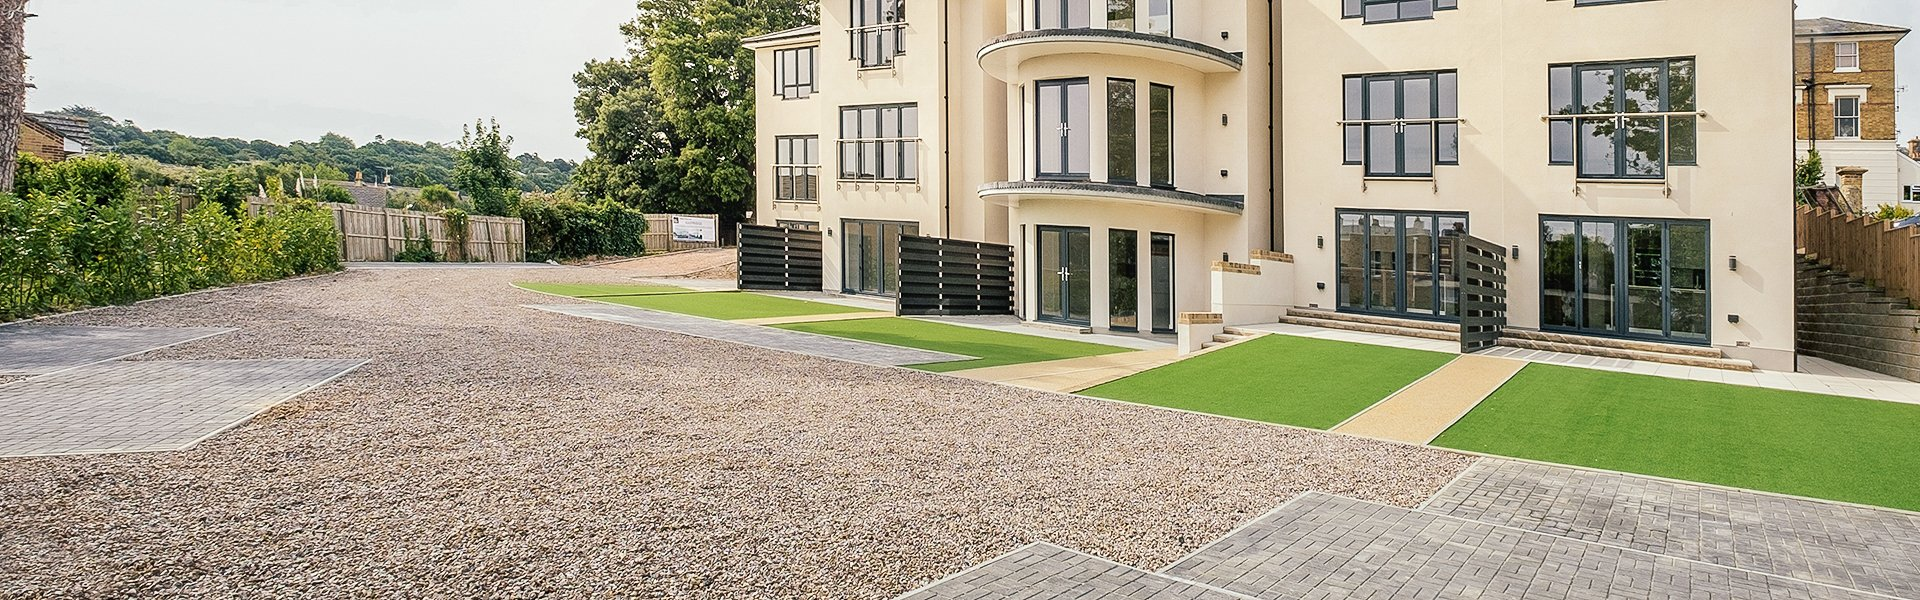 m&c paving driveways